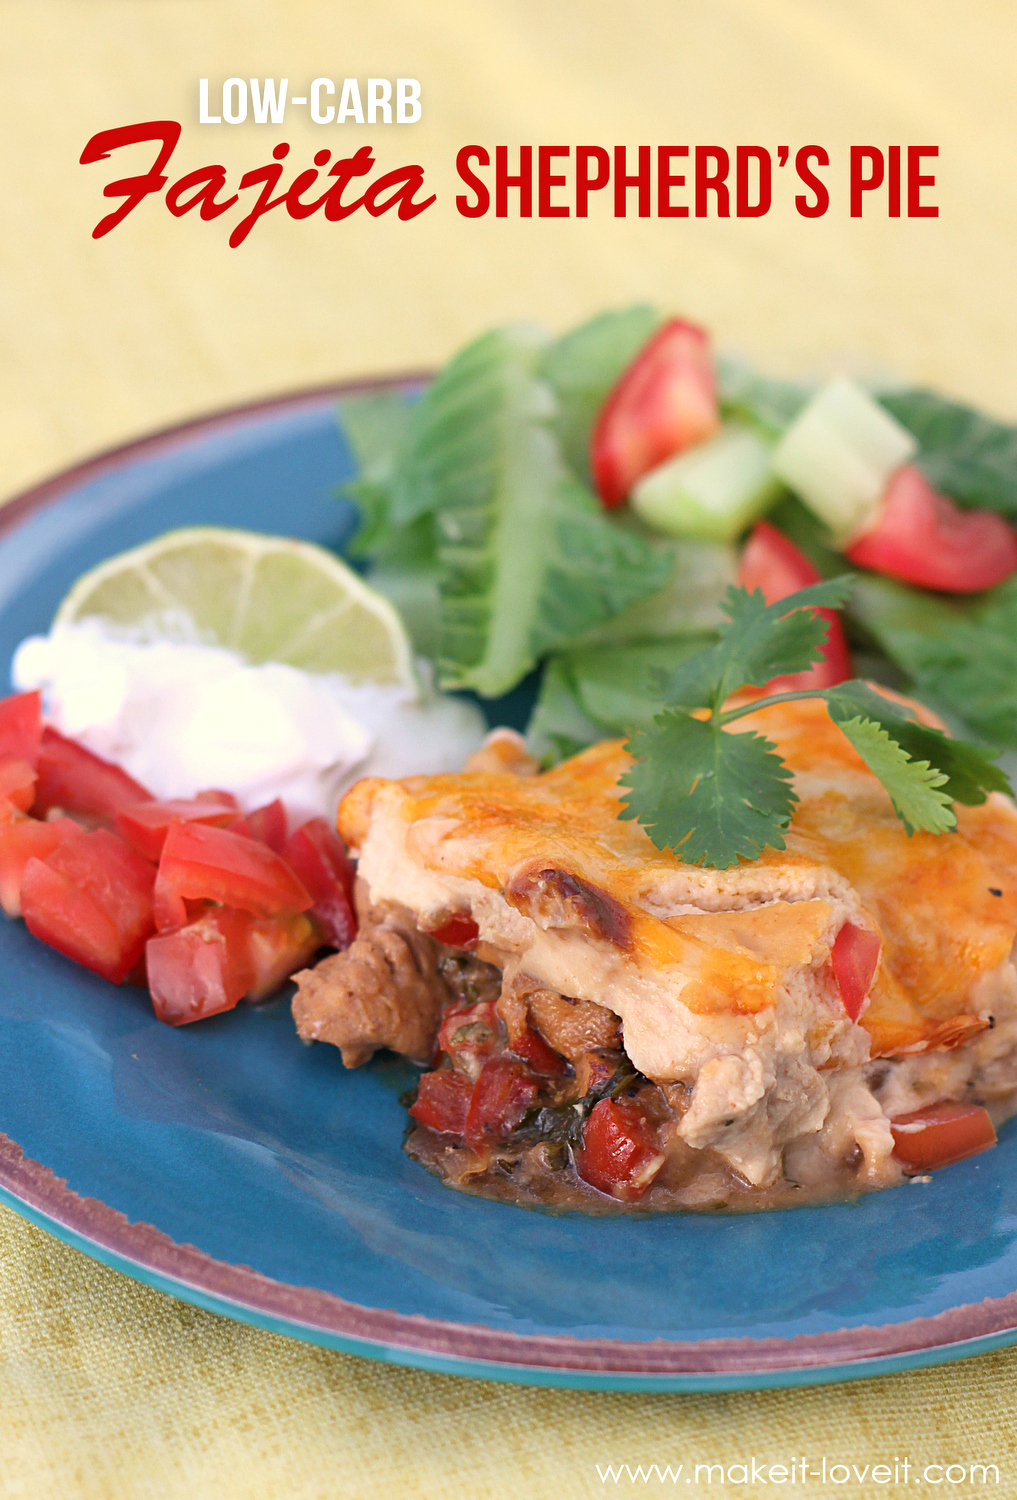 Low-Carb Fajita Shepherd's Pie